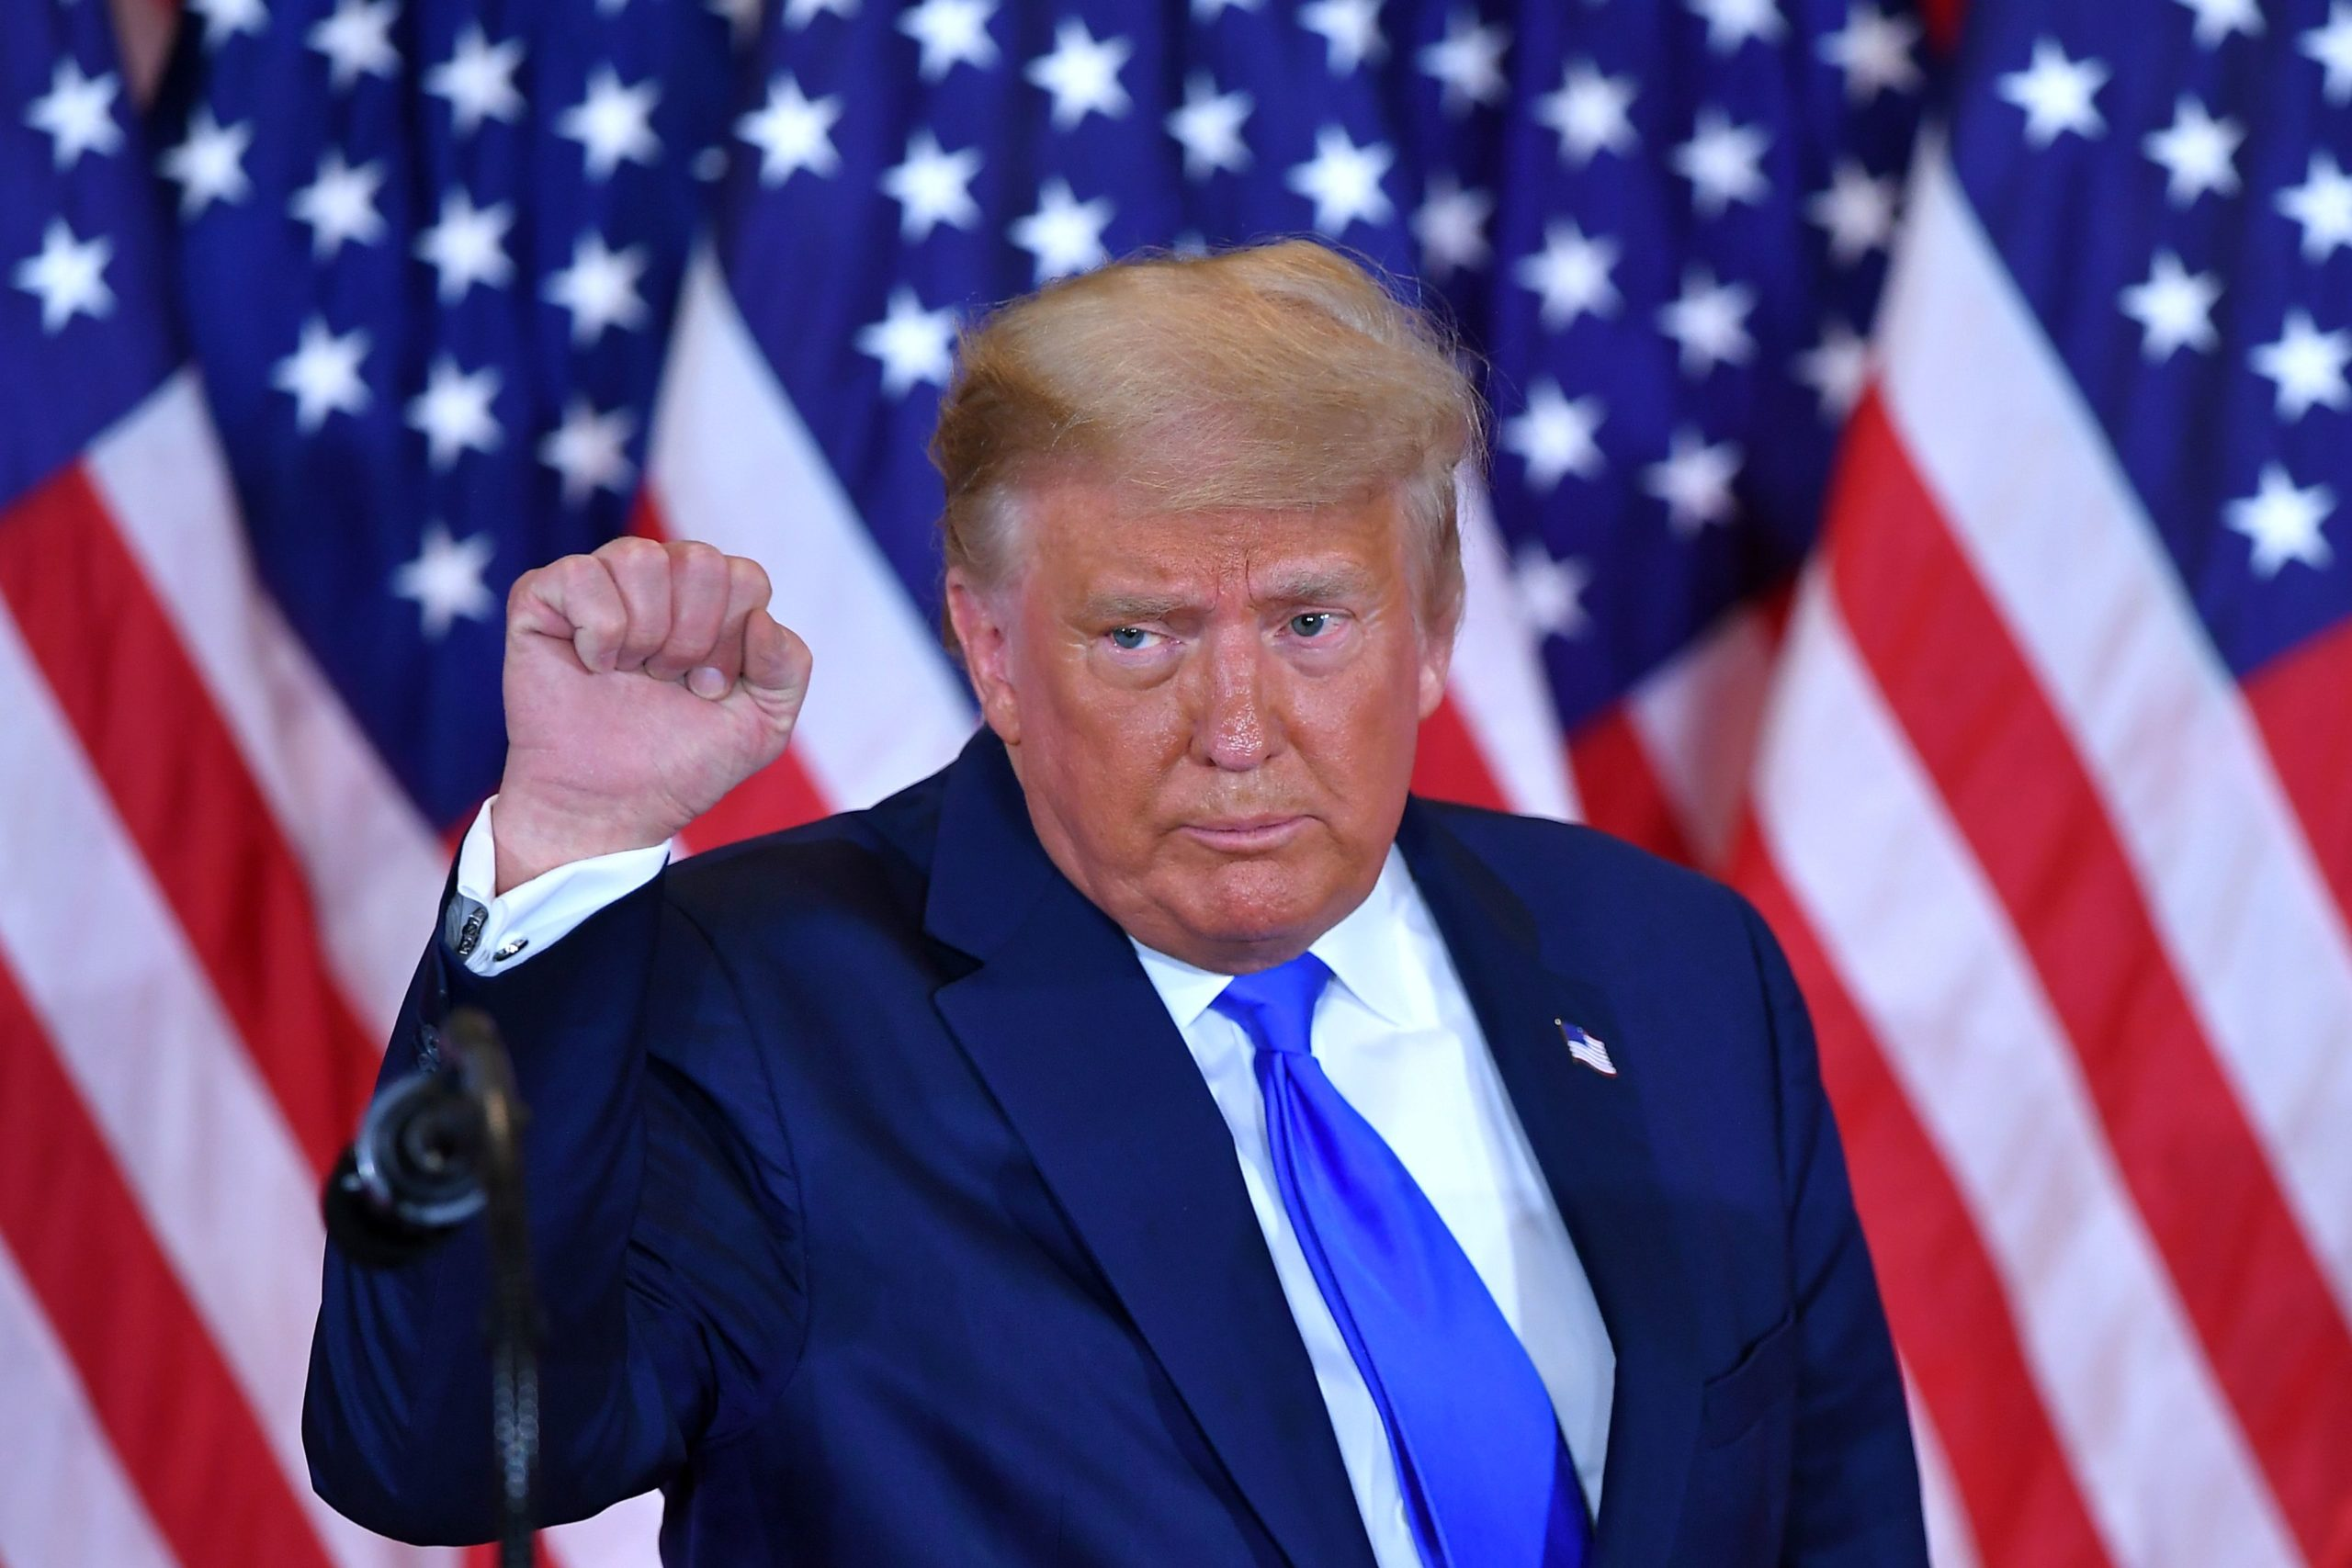 US President Donald Trump pumps his fist after speaking during election night in the East Room of the White House in Washington, DC, early on November 4, 2020. (Photo by MANDEL NGAN/AFP via Getty Images)